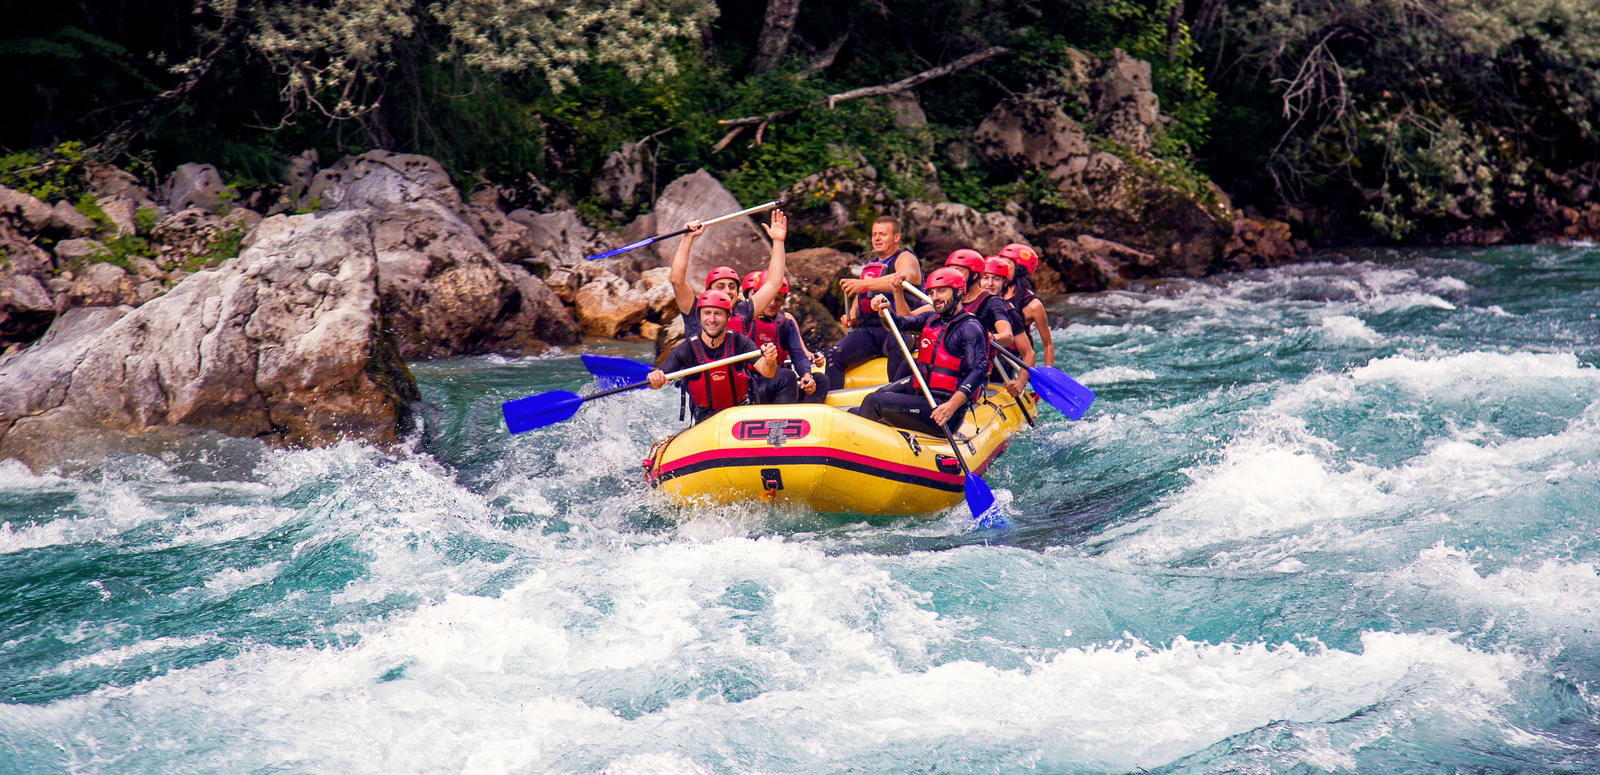 7bfdf5c88417 River Rafting in Rishikesh - 2019 Detailed Guide (6000+ Reviews)